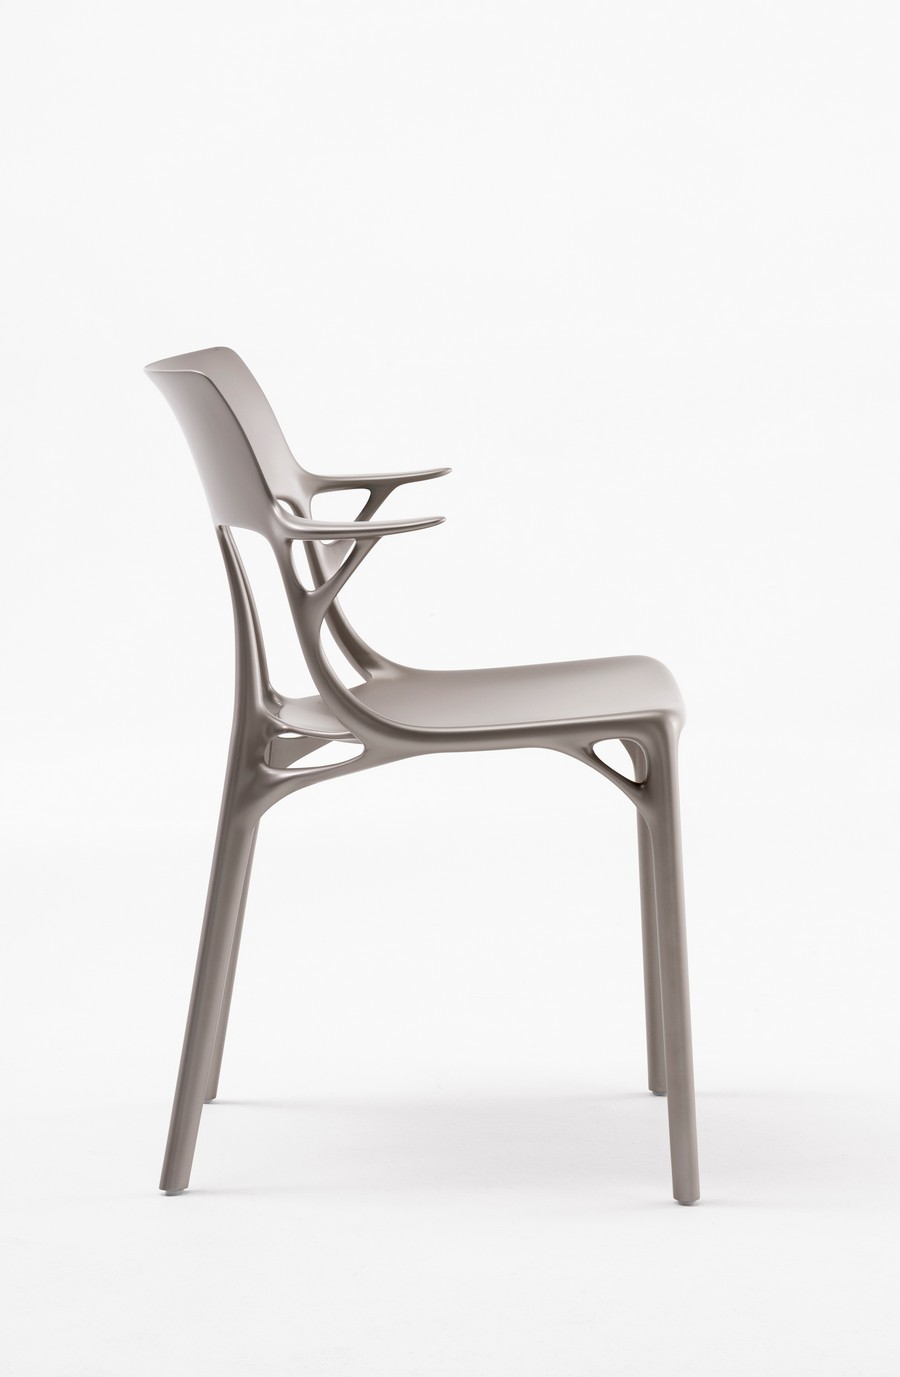 Kartell and Philippe Starck Created The First A.I. Chair Design kartell Kartell and Philippe Starck Created The First A.I. Chair Design Kartell and Philippe Starck Created The First AI Chair Design 5